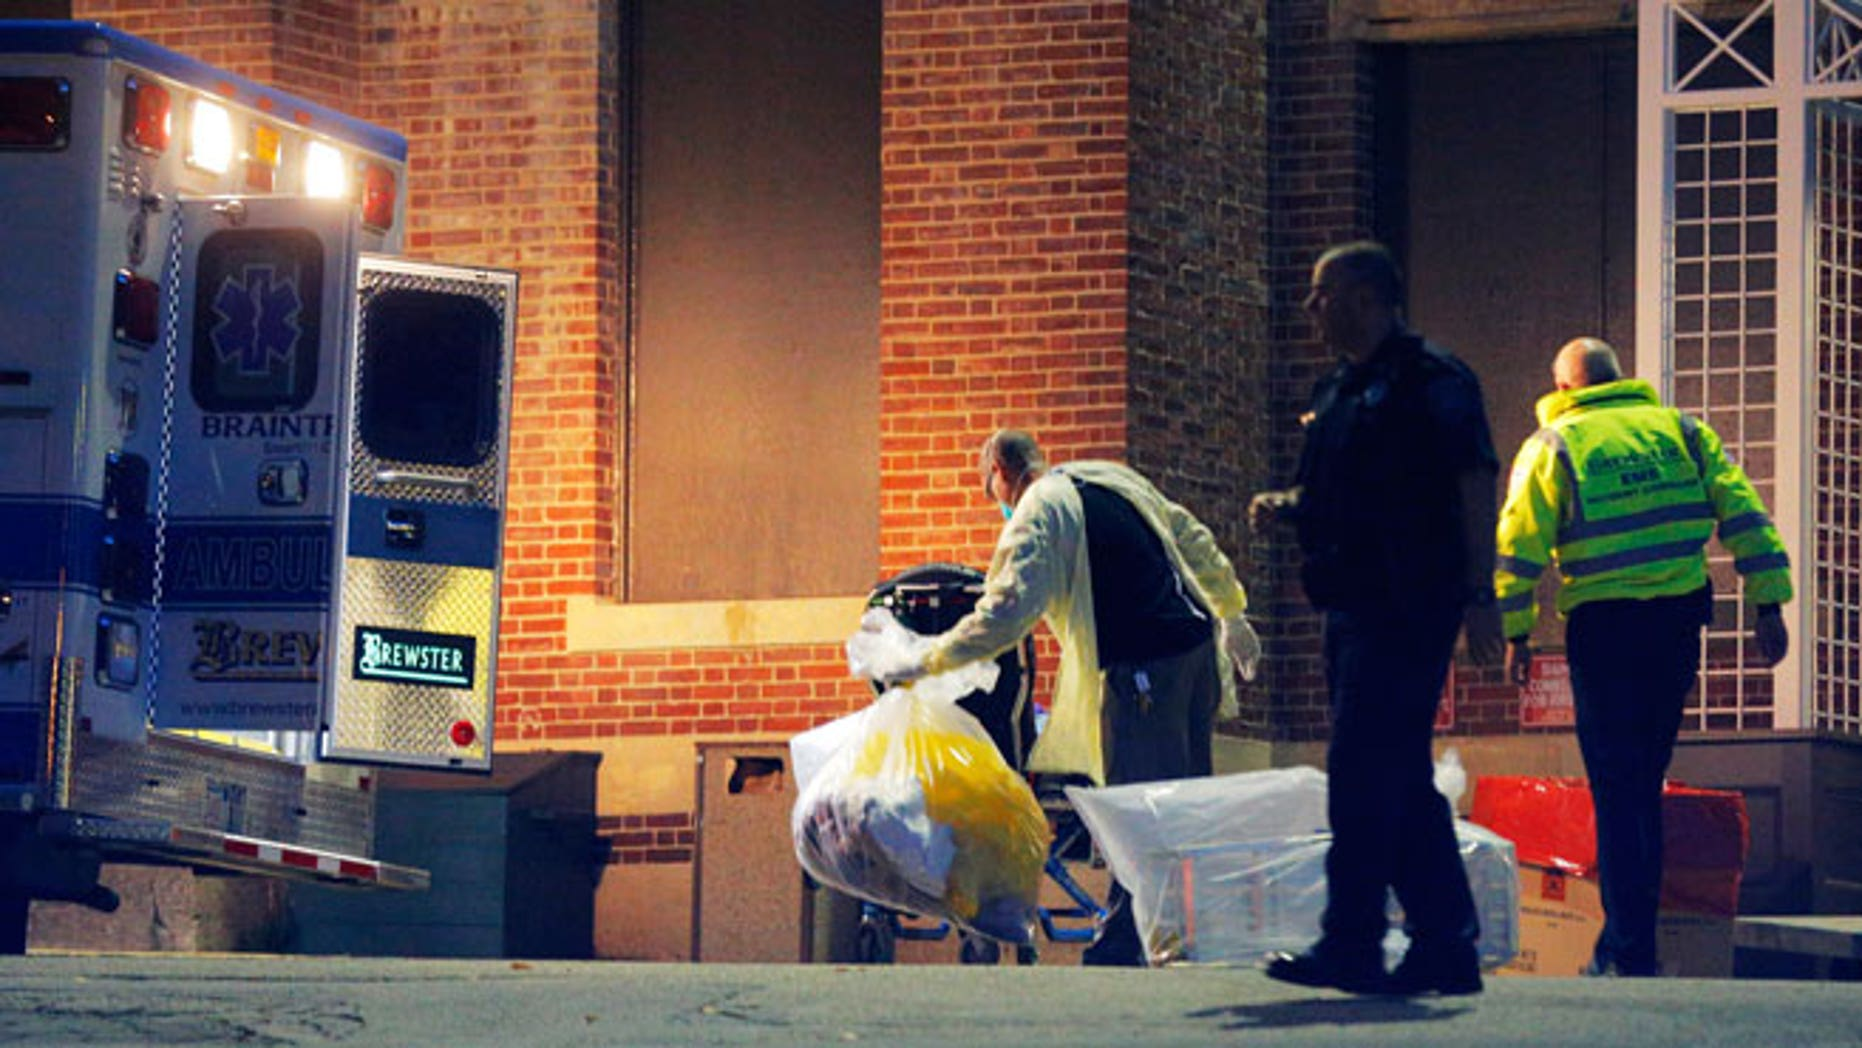 A man collects and bags items behind the ambulance used to transport a patient with possible Ebola symptoms to Beth Israel Deaconess Medical Center in Boston, Massachusetts October 12, 2014. A patient in Massachusetts who recently returned from Liberia and was displaying symptoms of Ebola was transferred from a medical clinic to a Boston hospital on Sunday, the hospital said. The patient has not been confirmed to have the deadly virus. REUTERS/Brian Snyder